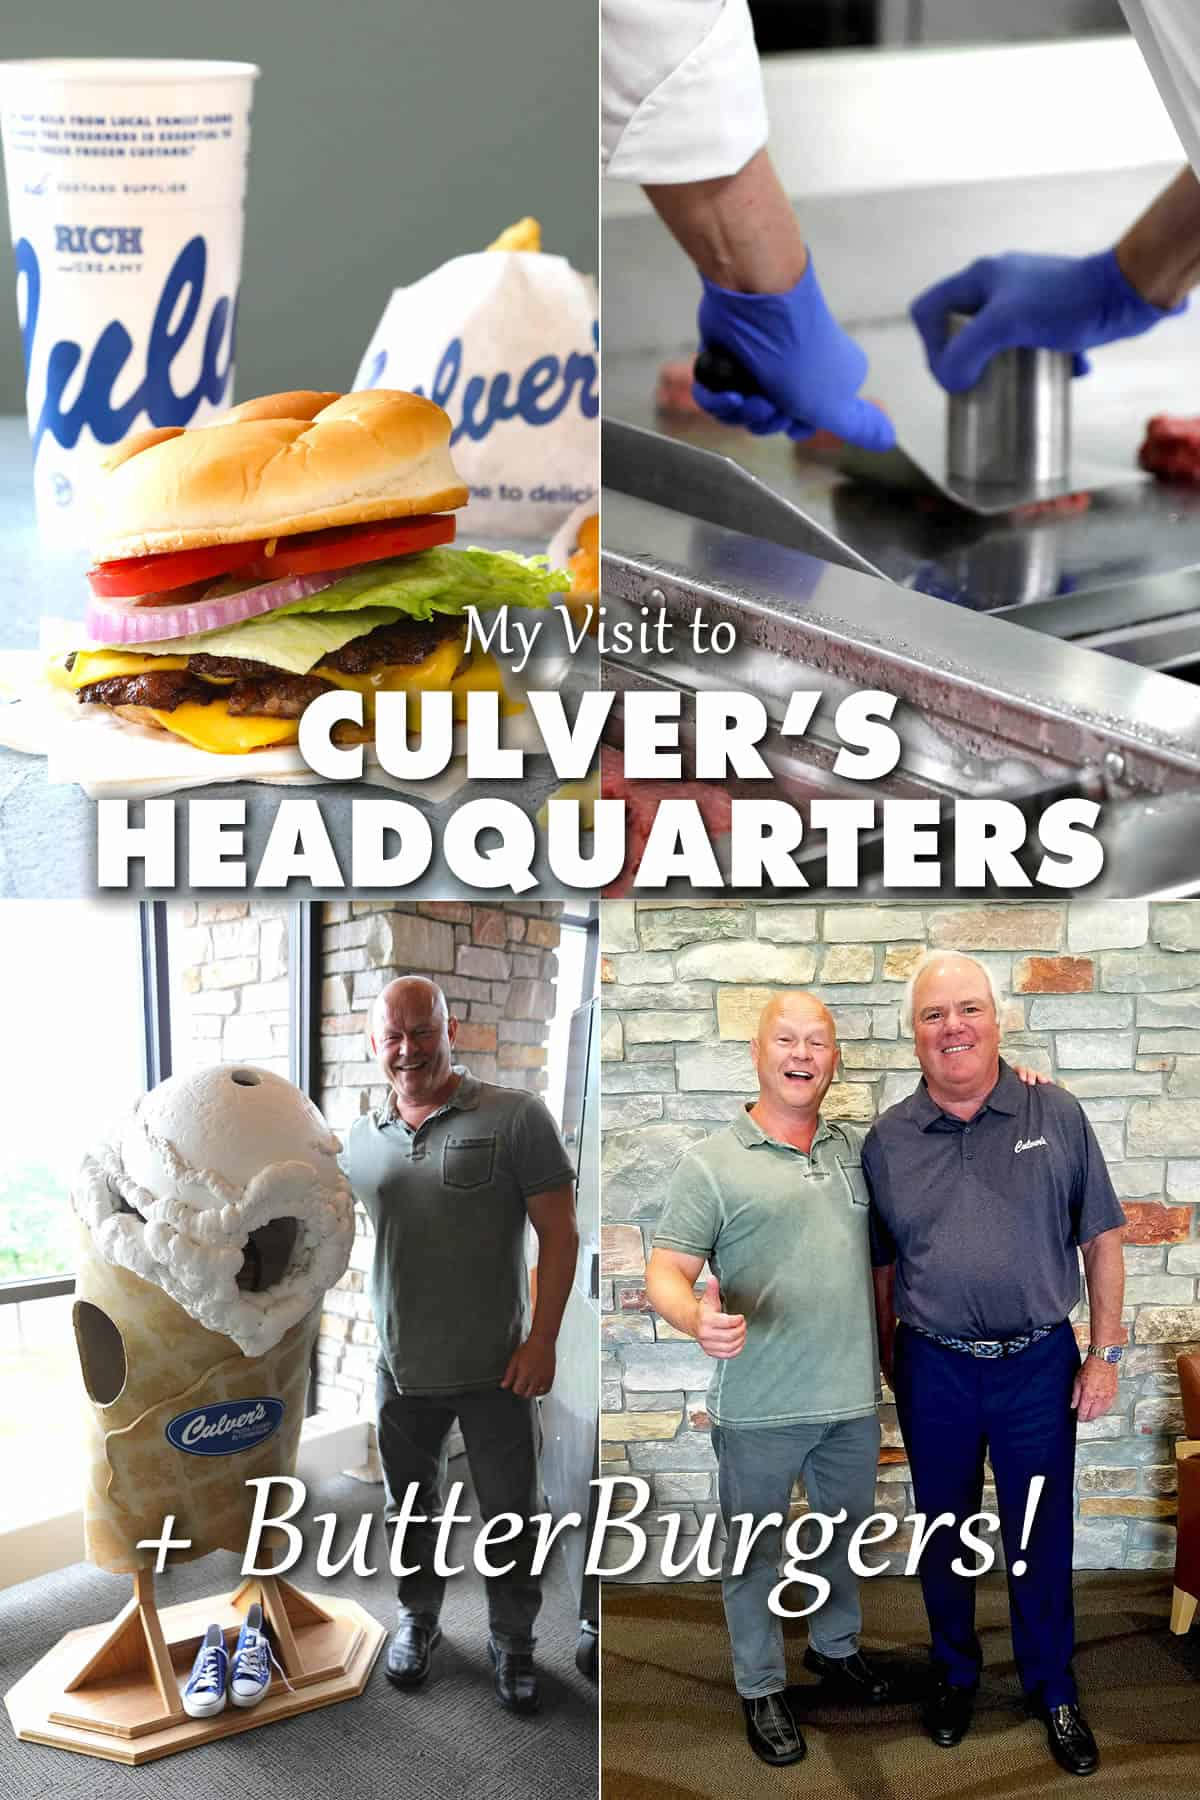 My Visit to Culver's Headquarters + ButterBurgers!